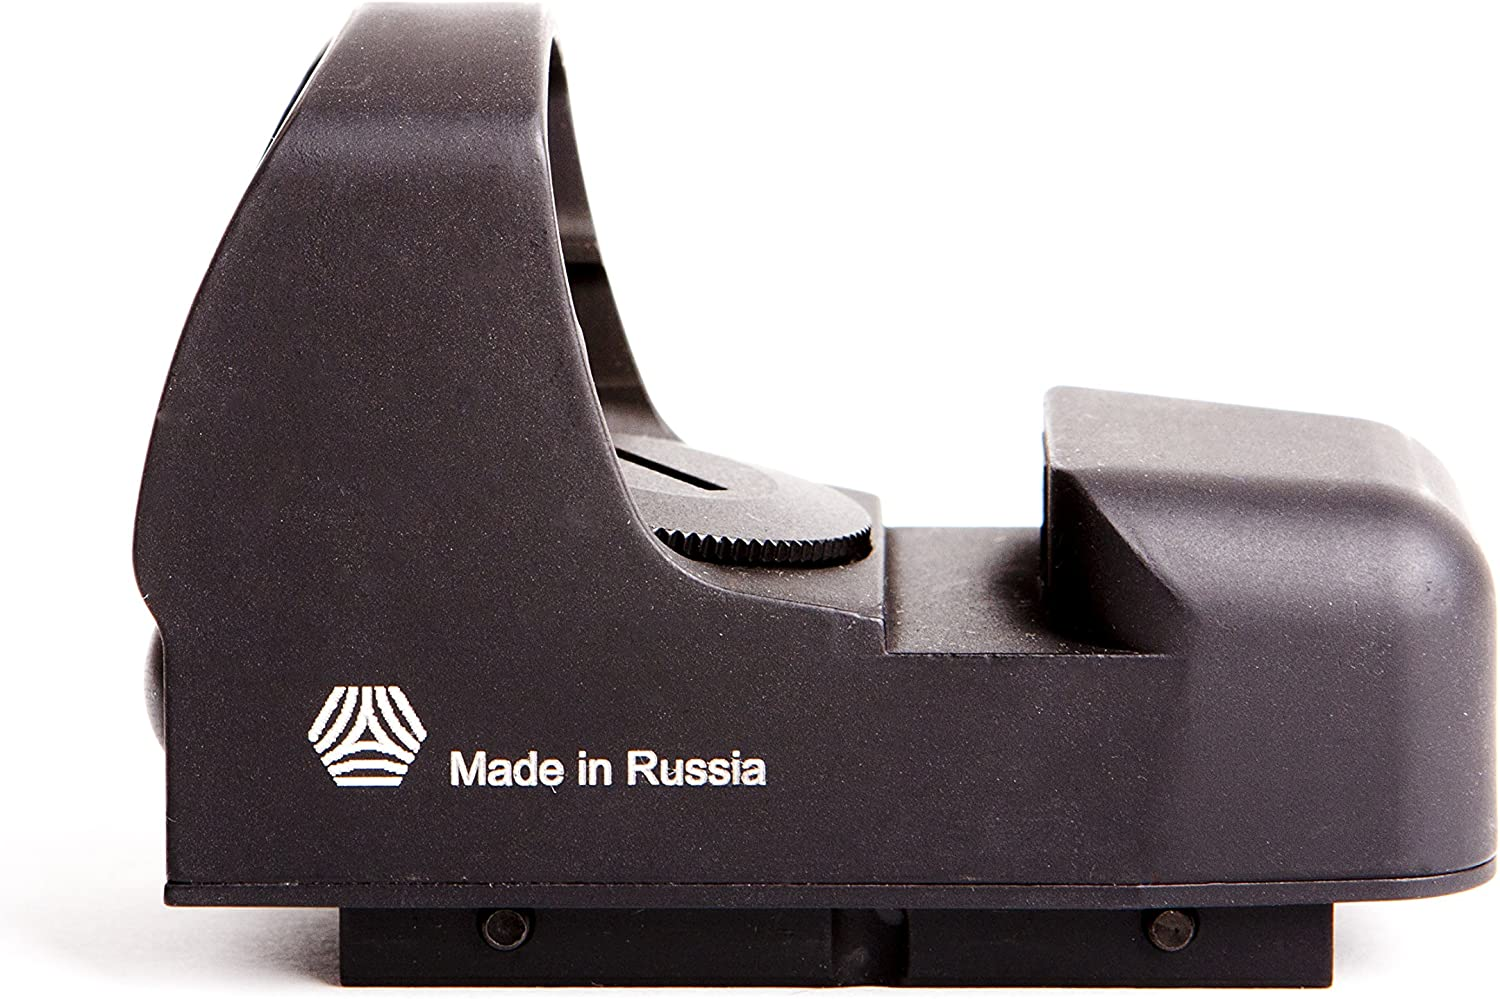 Pilad TargetRing Sight Low profile RedRing Russian Scope By VOMZ Shvabe